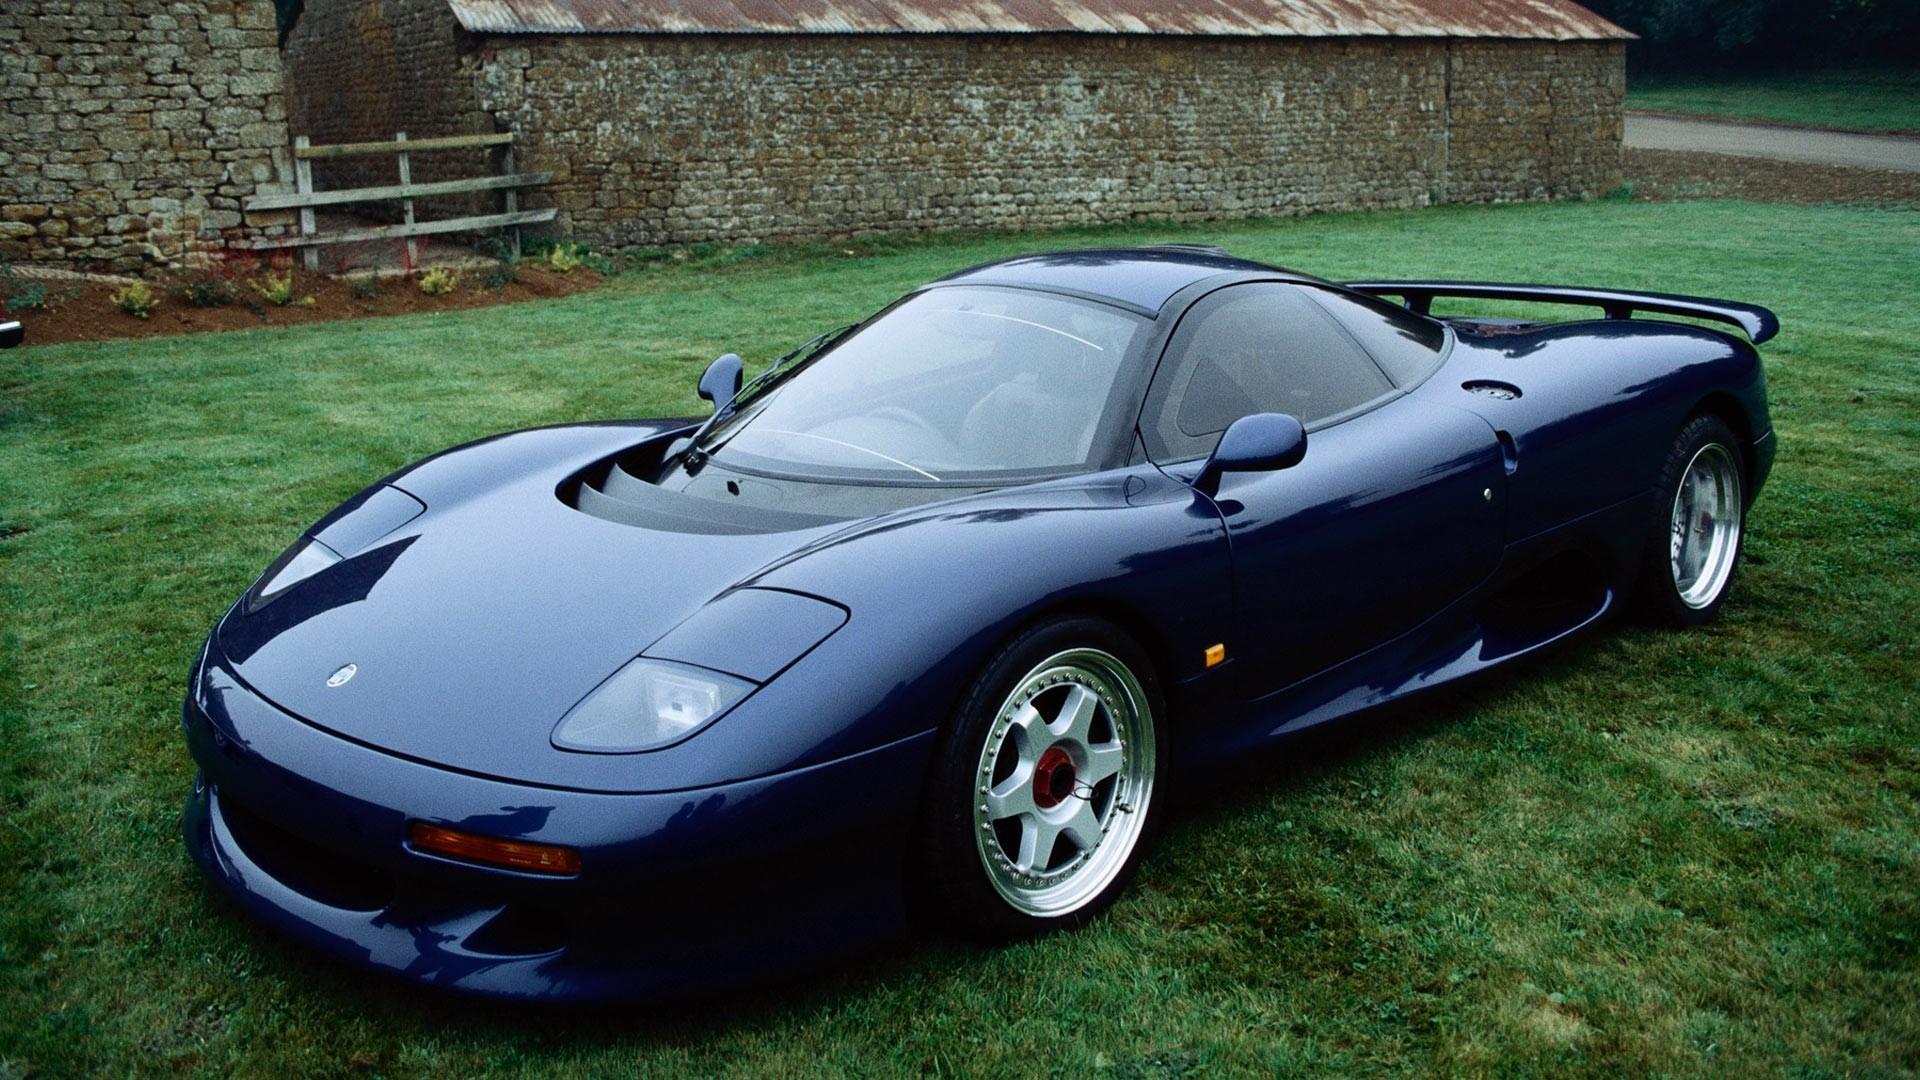 cars Sports Jaguar XJR-15 HD Wallpaper